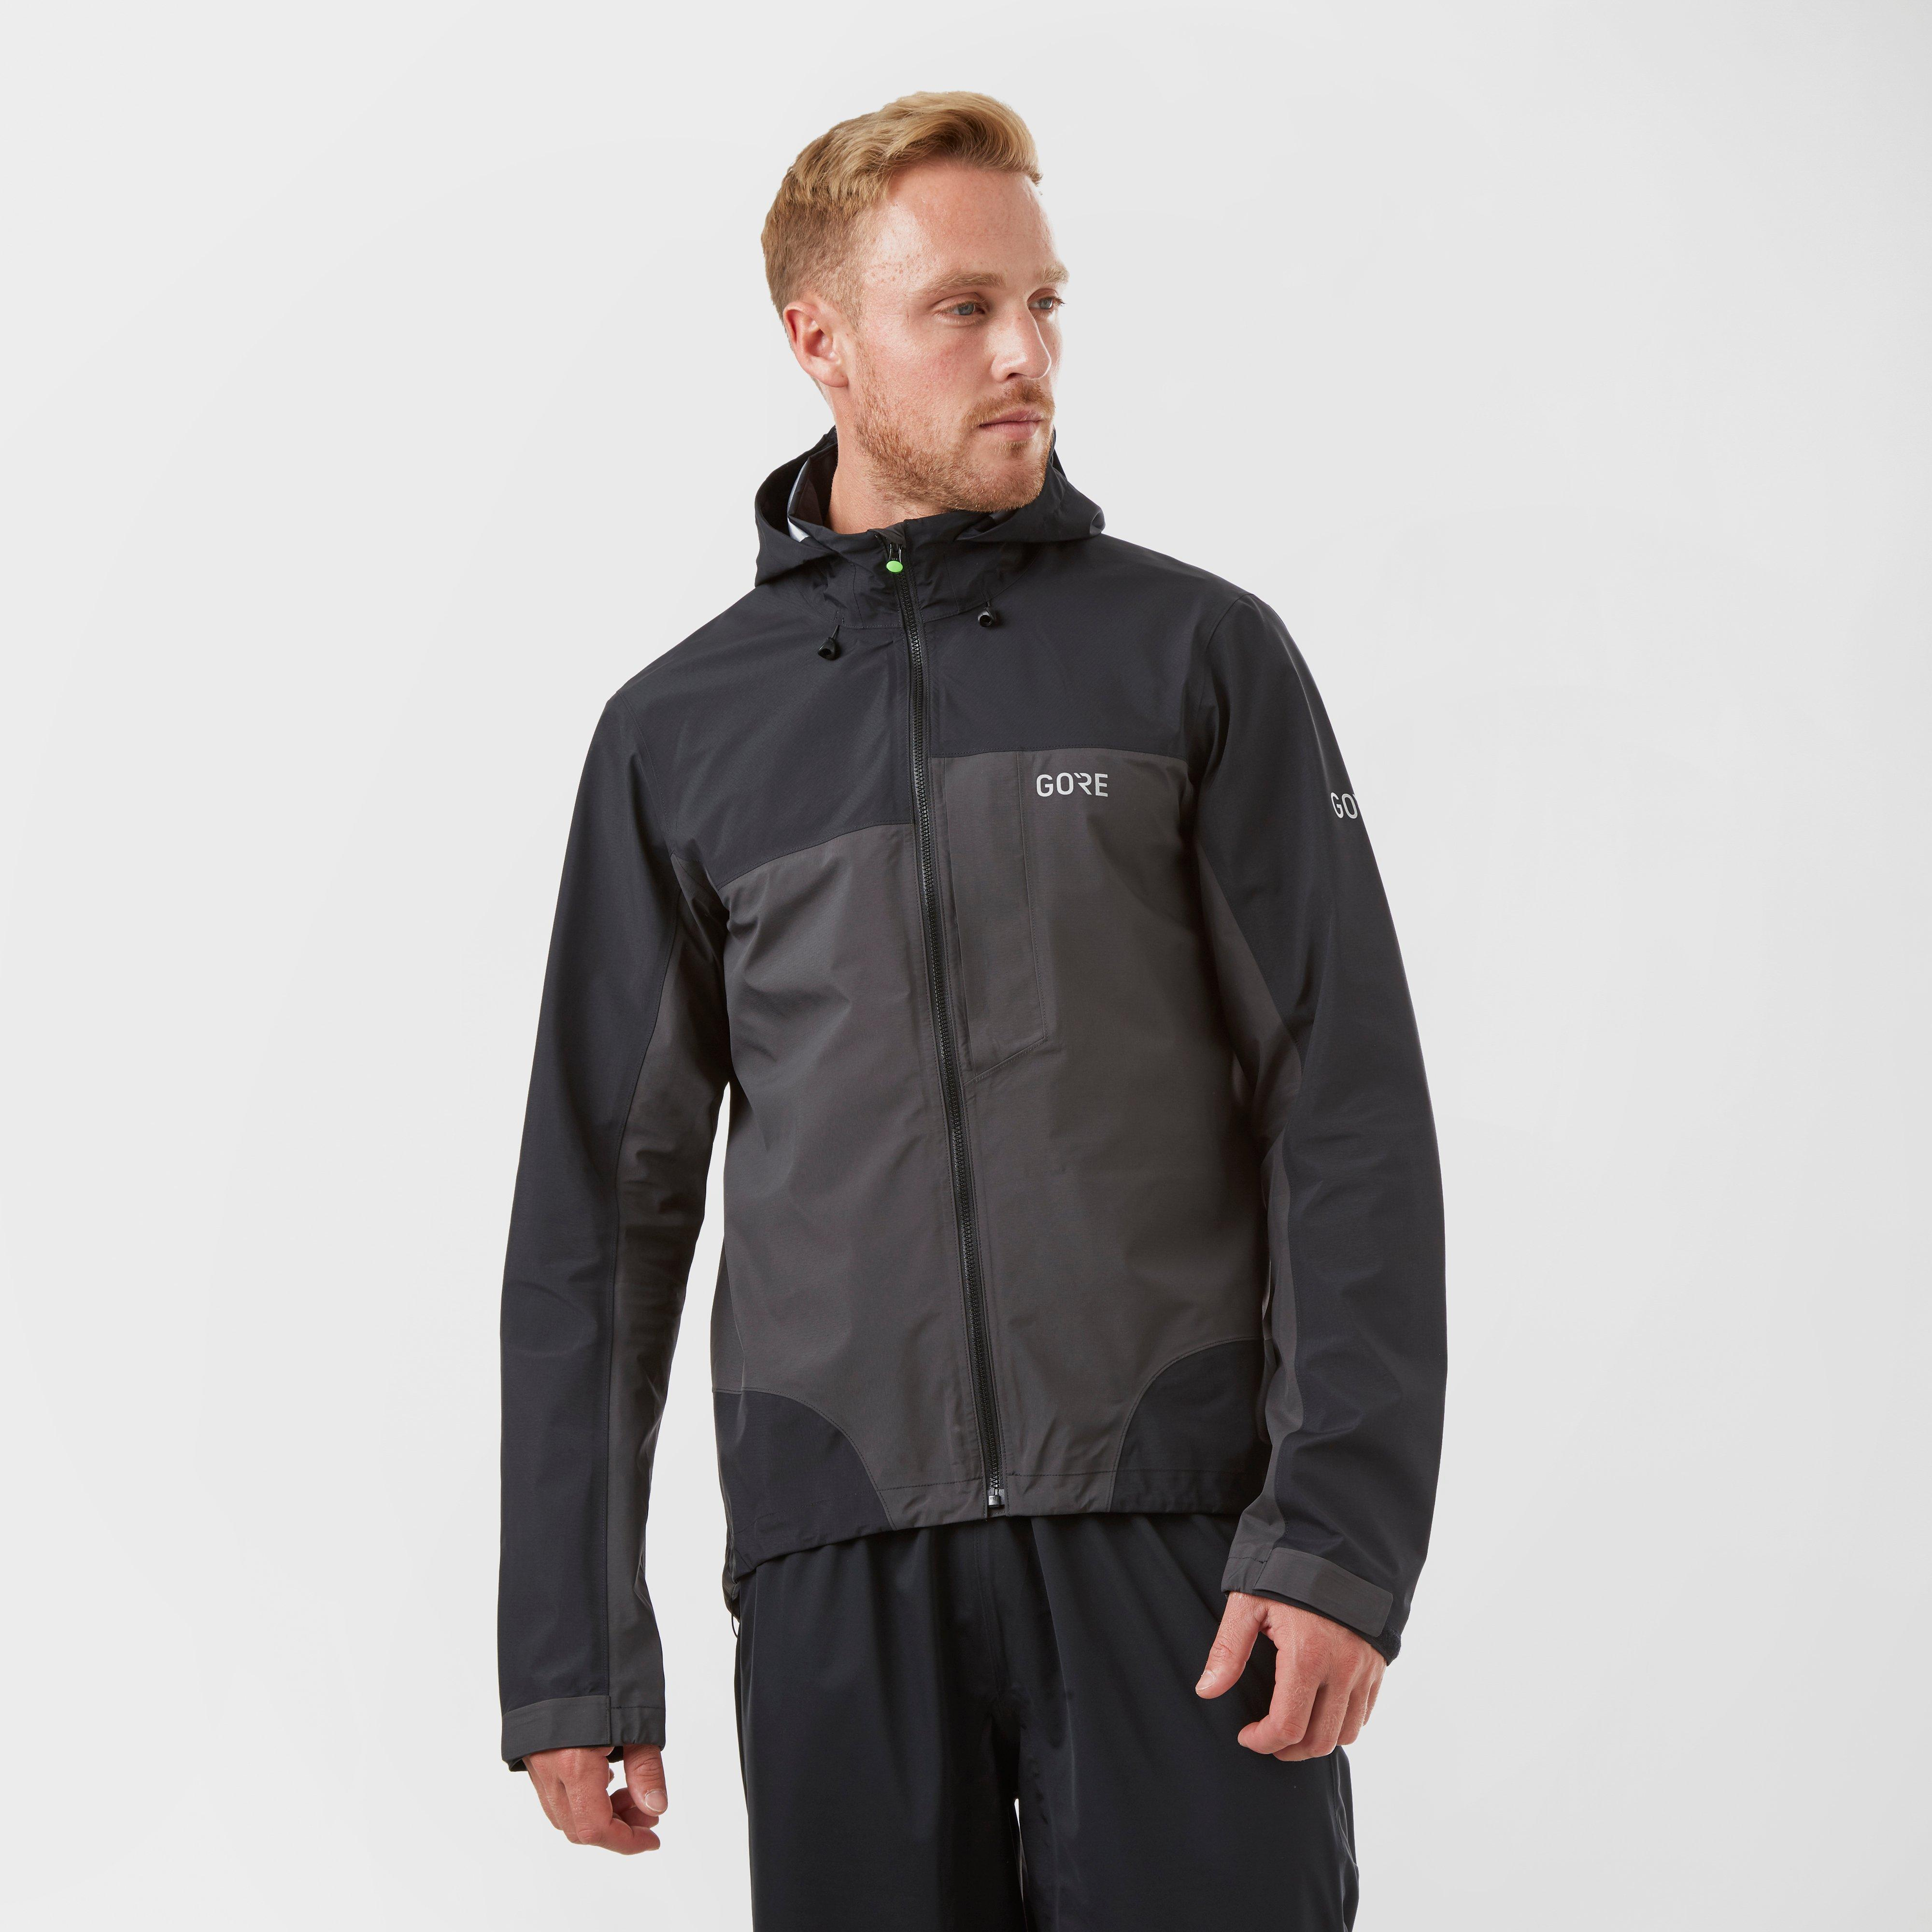 775e91c6 Details about New Gore Men's C5 GORE-TEX Active Trail Hooded Jacket